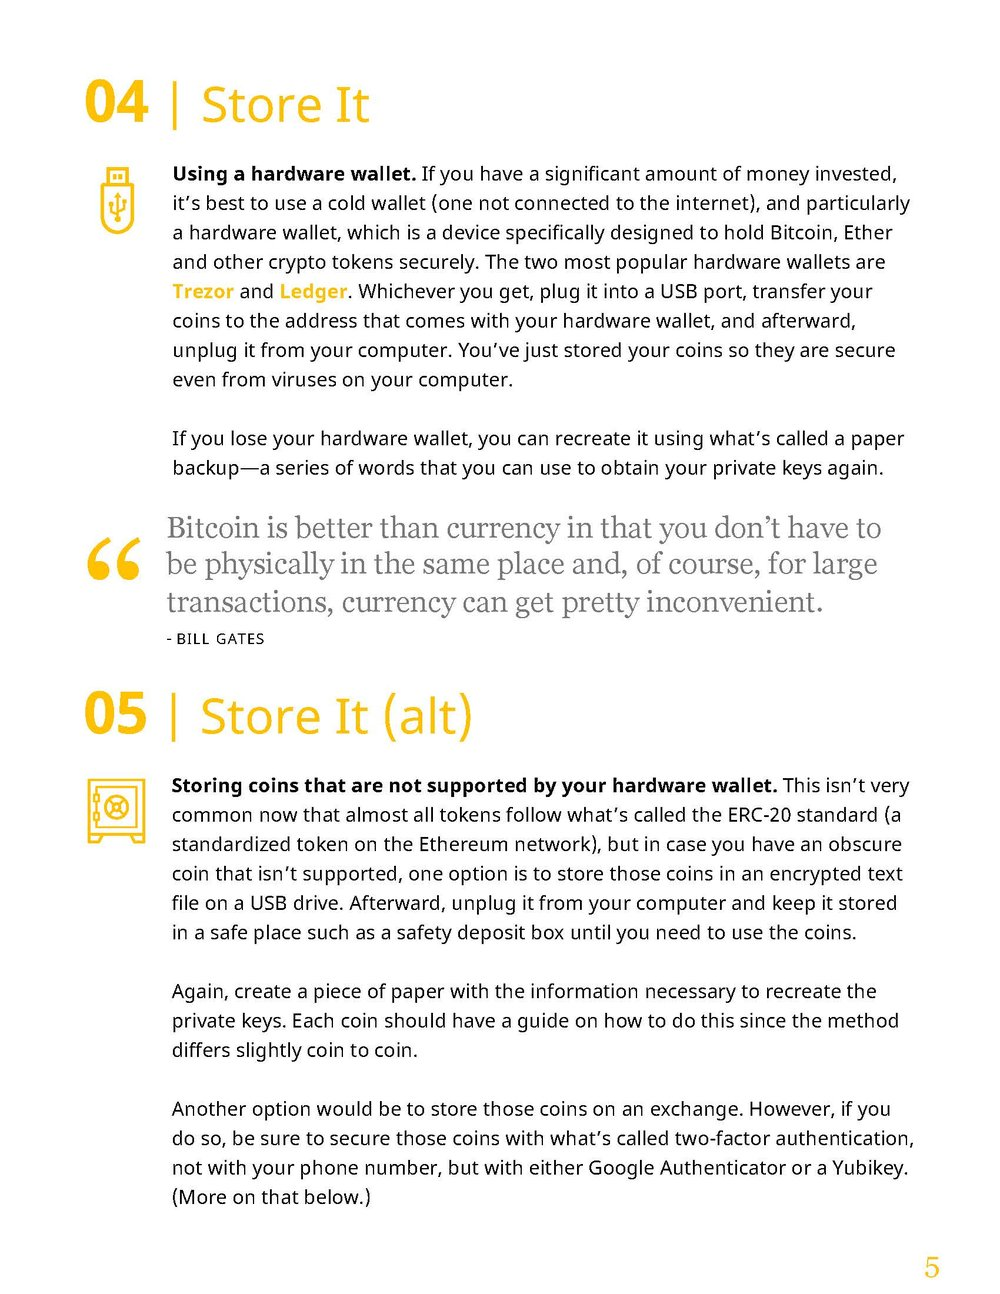 forbes-crypto-newsletter-r04_Page_05.jpg